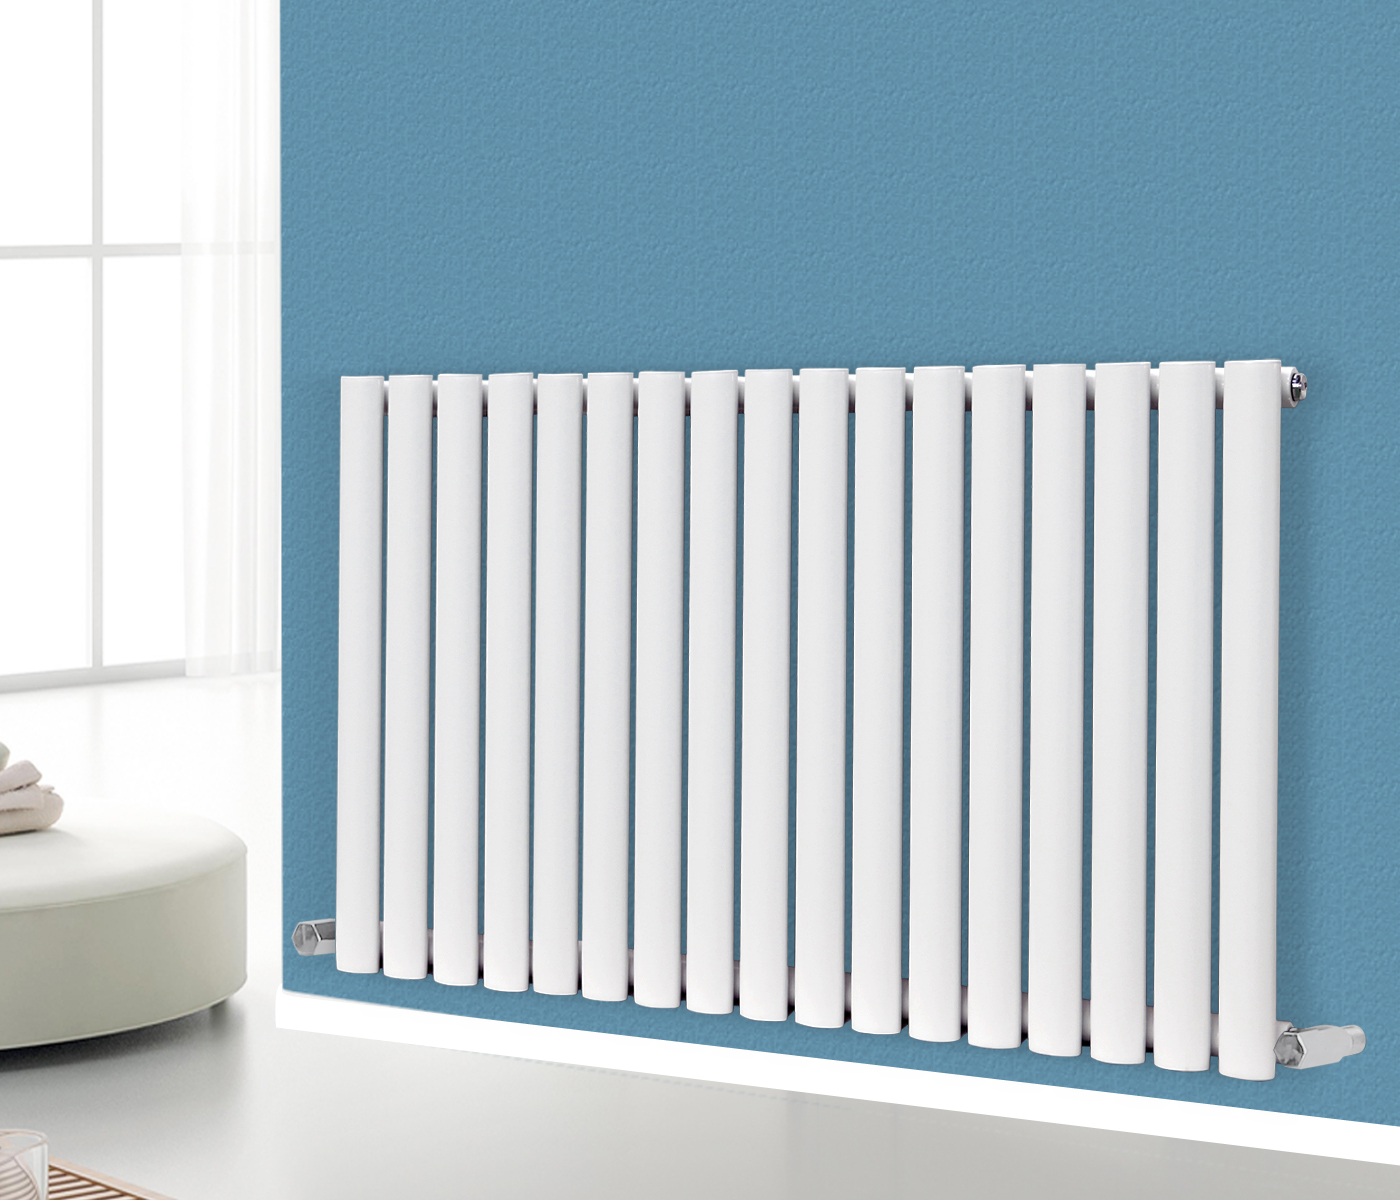 Horizontal Designer Oval Column Panel Bathroom Radiators Central Heating White Ebay